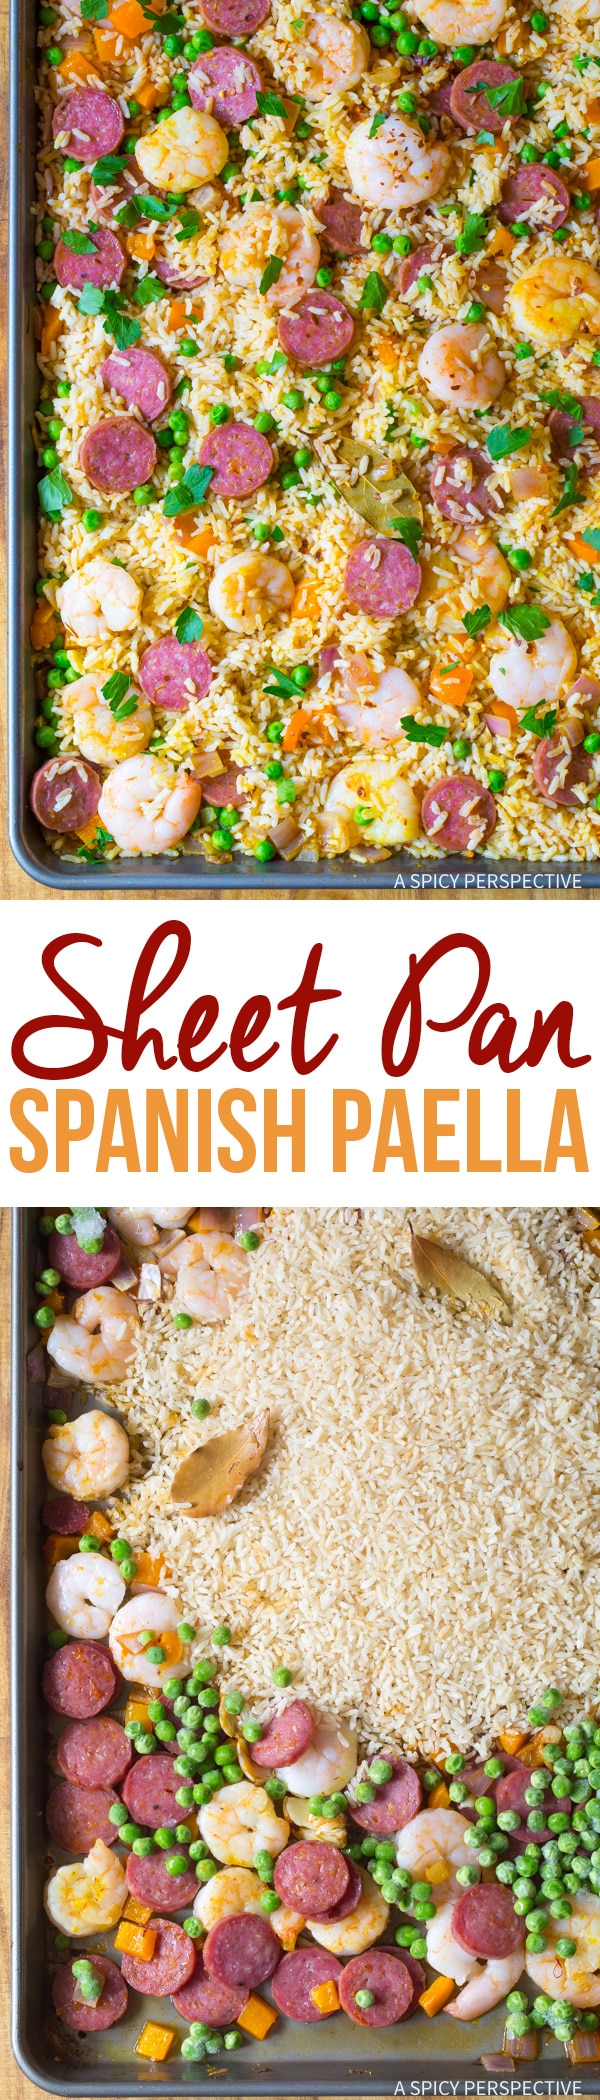 Easy Spanish Paella Sheet Pan Dinner Recipe #healthy #light